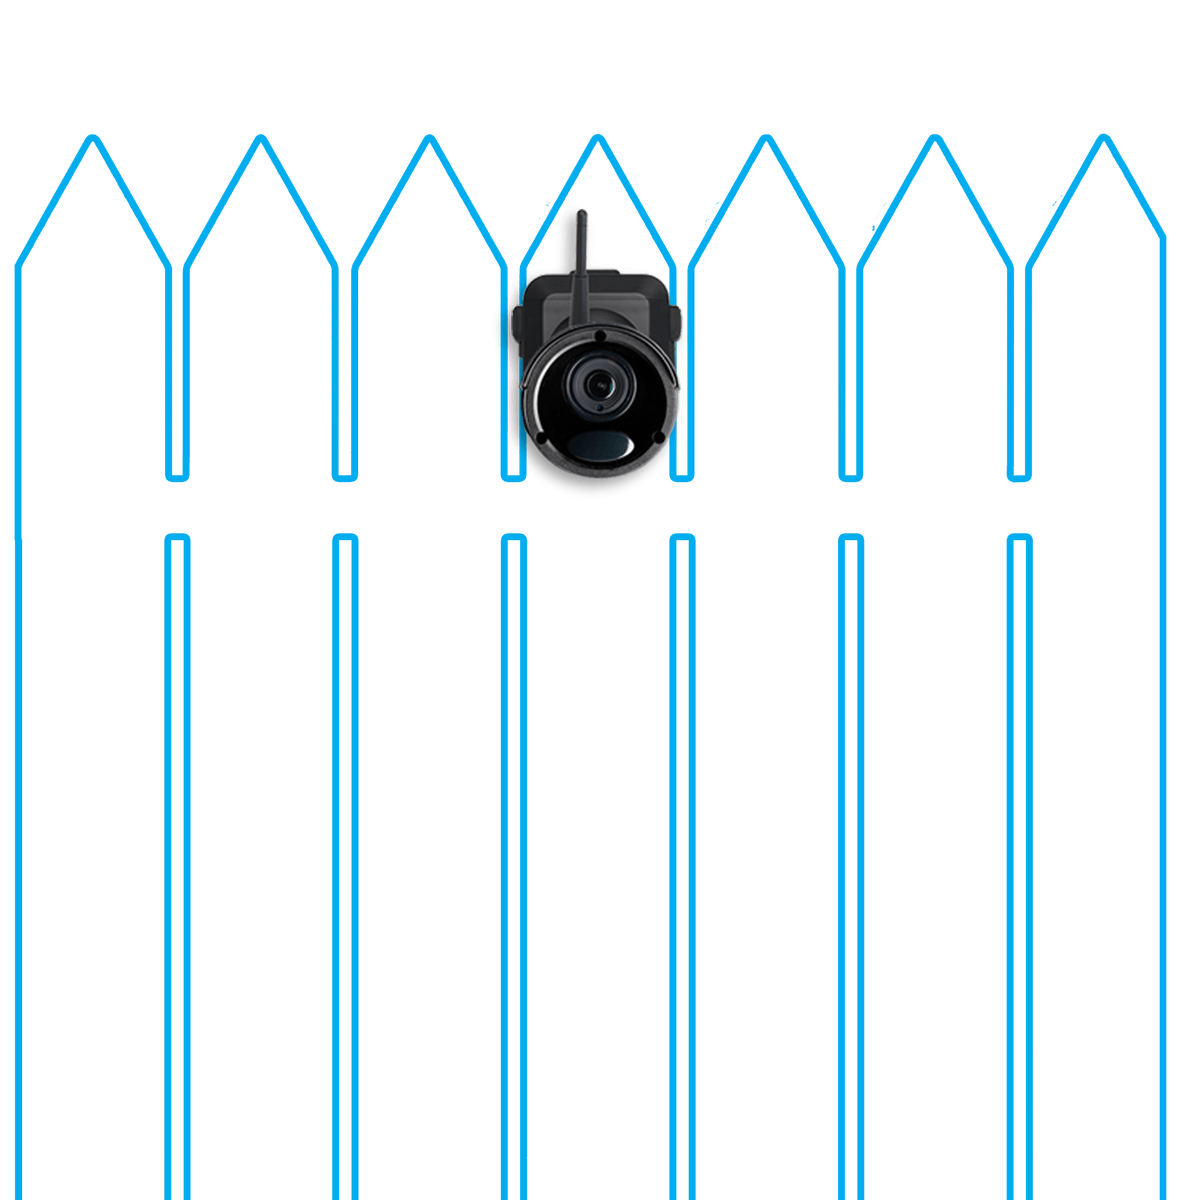 wire-free security camera wireless range